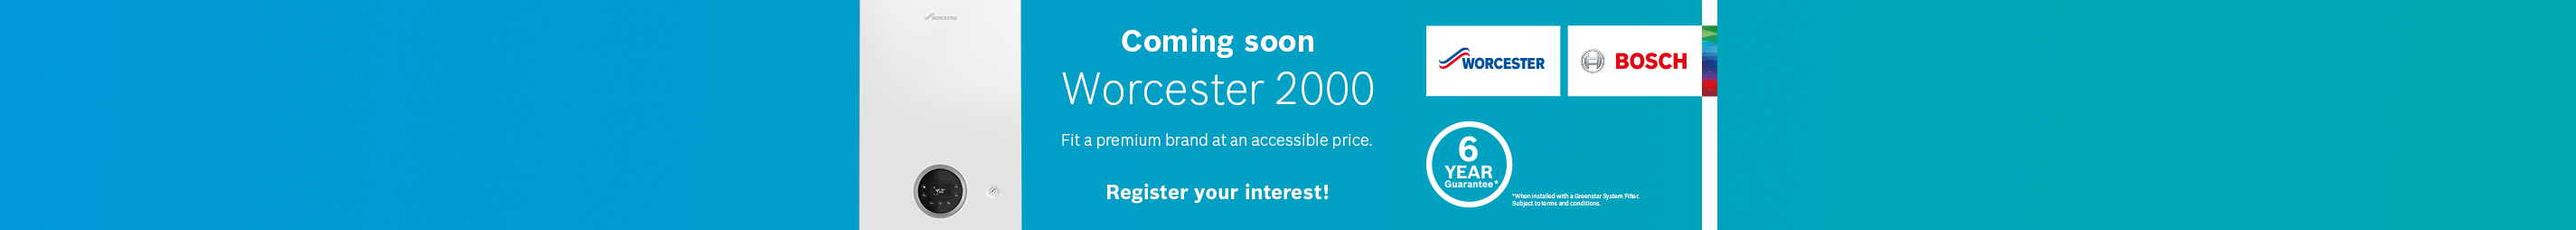 Worcester 2000 Coming Soon!